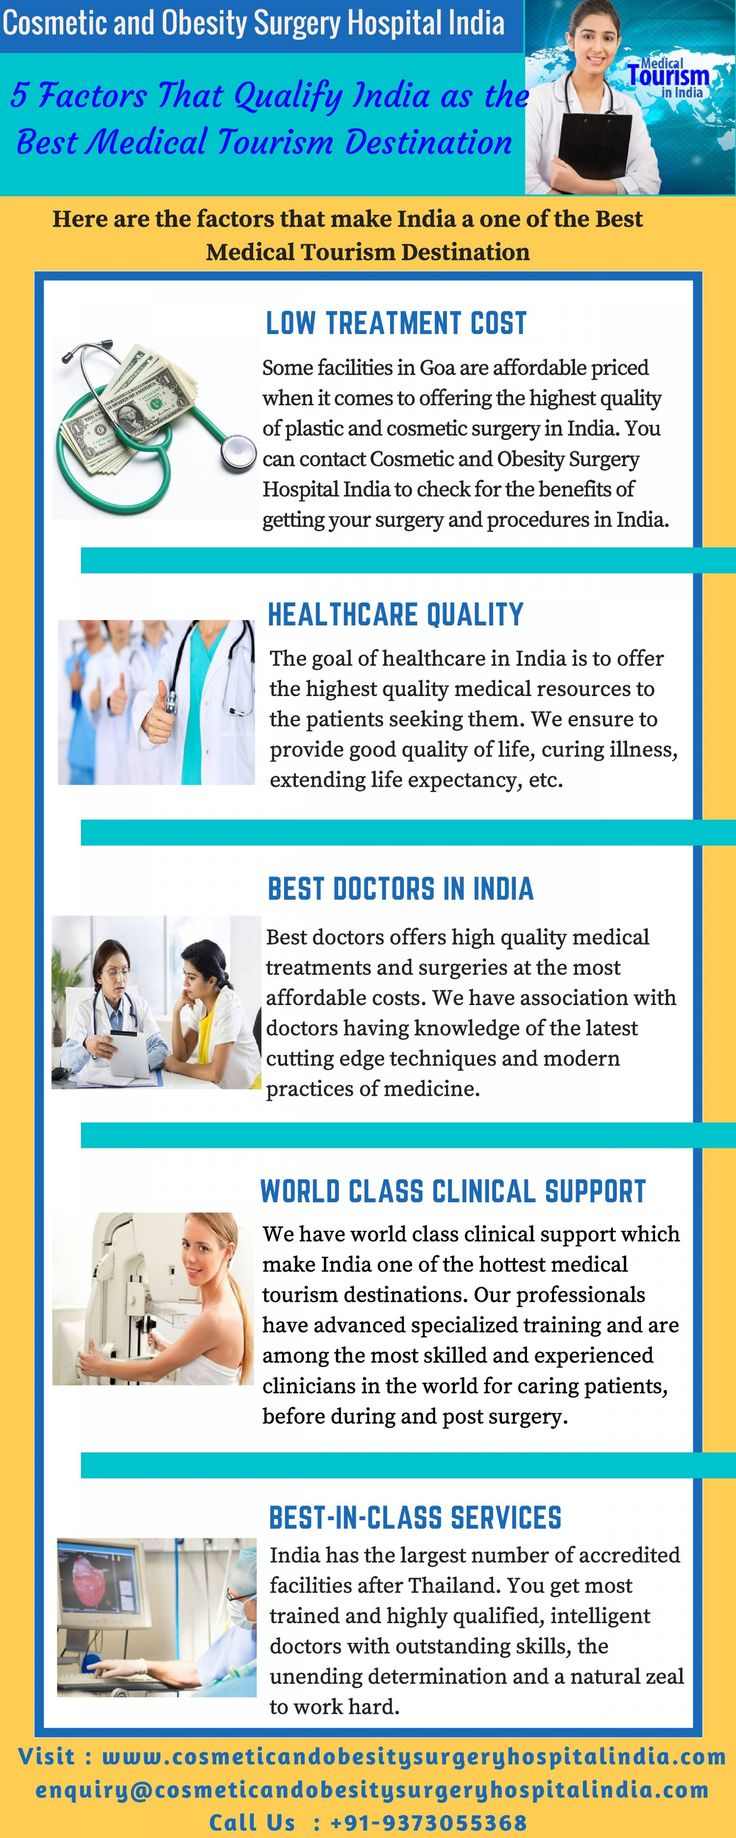 5 Factors That Qualify India as the Best Medical Tourism Destination